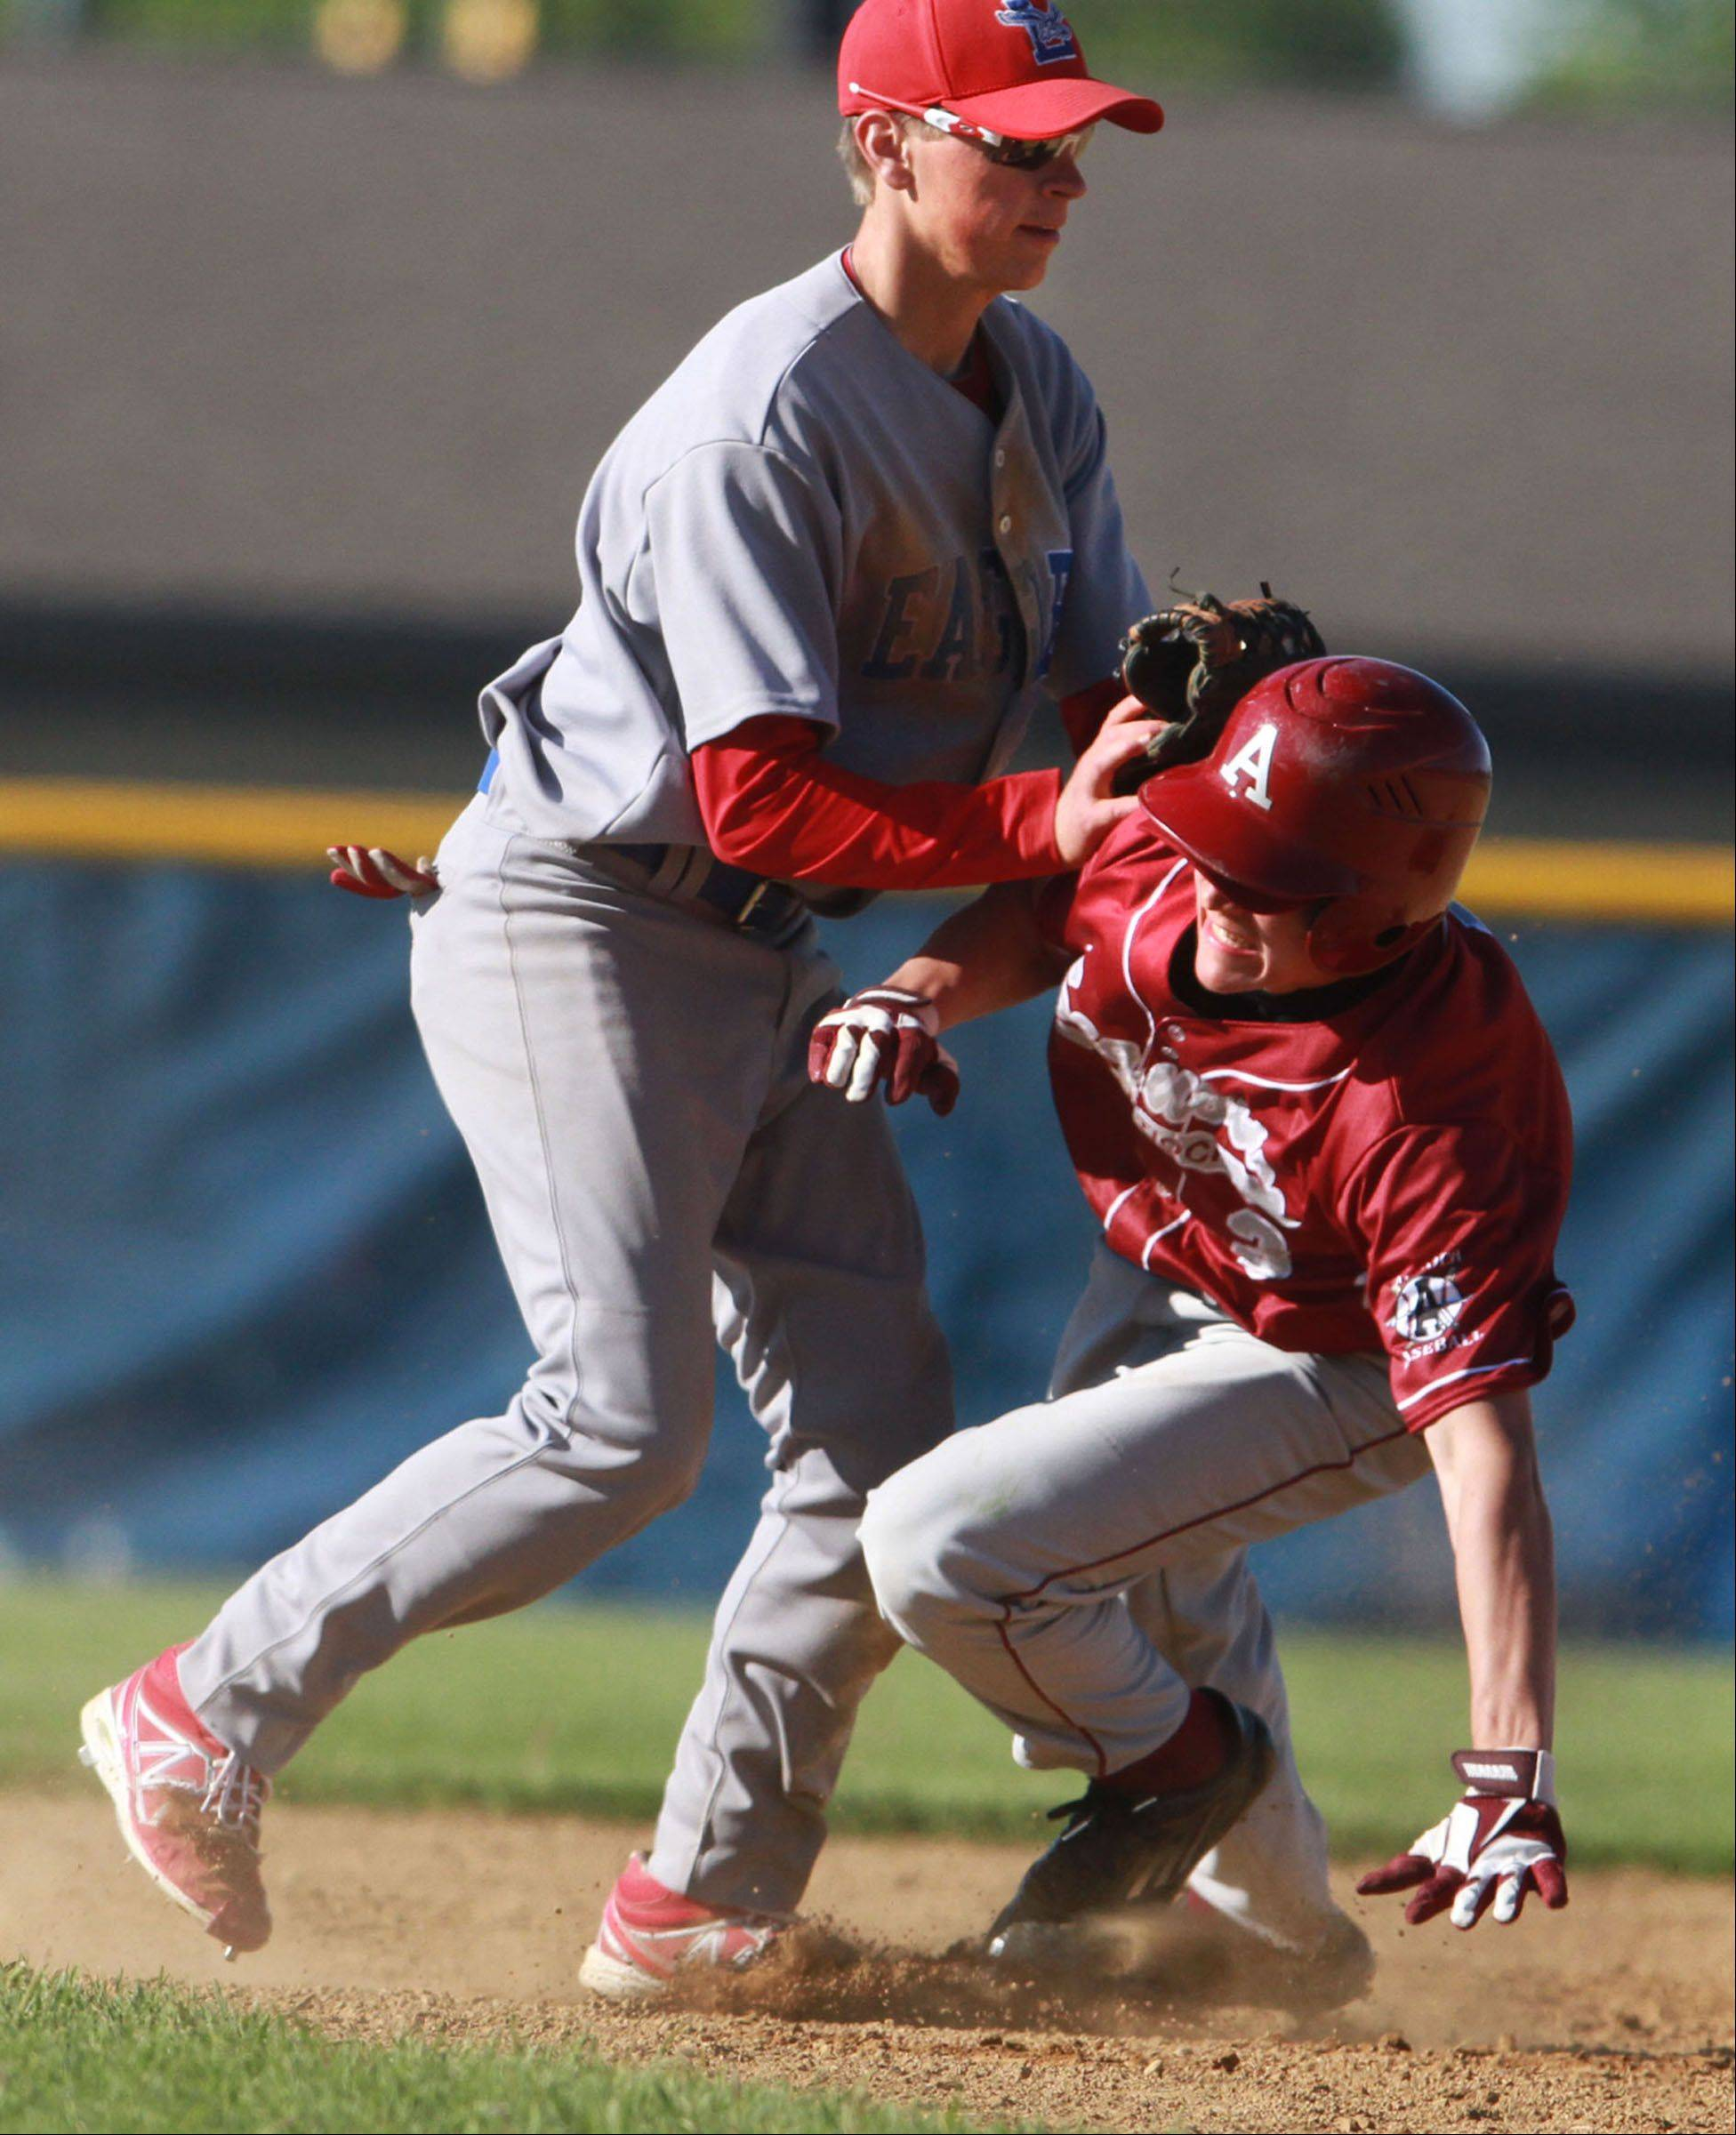 Lakes shortstop Nick Seketa tags out Antioch's Collin Prather at second base as Lakes wins the Class 3A regional semifinal at Lakes 1-0 on Friday.